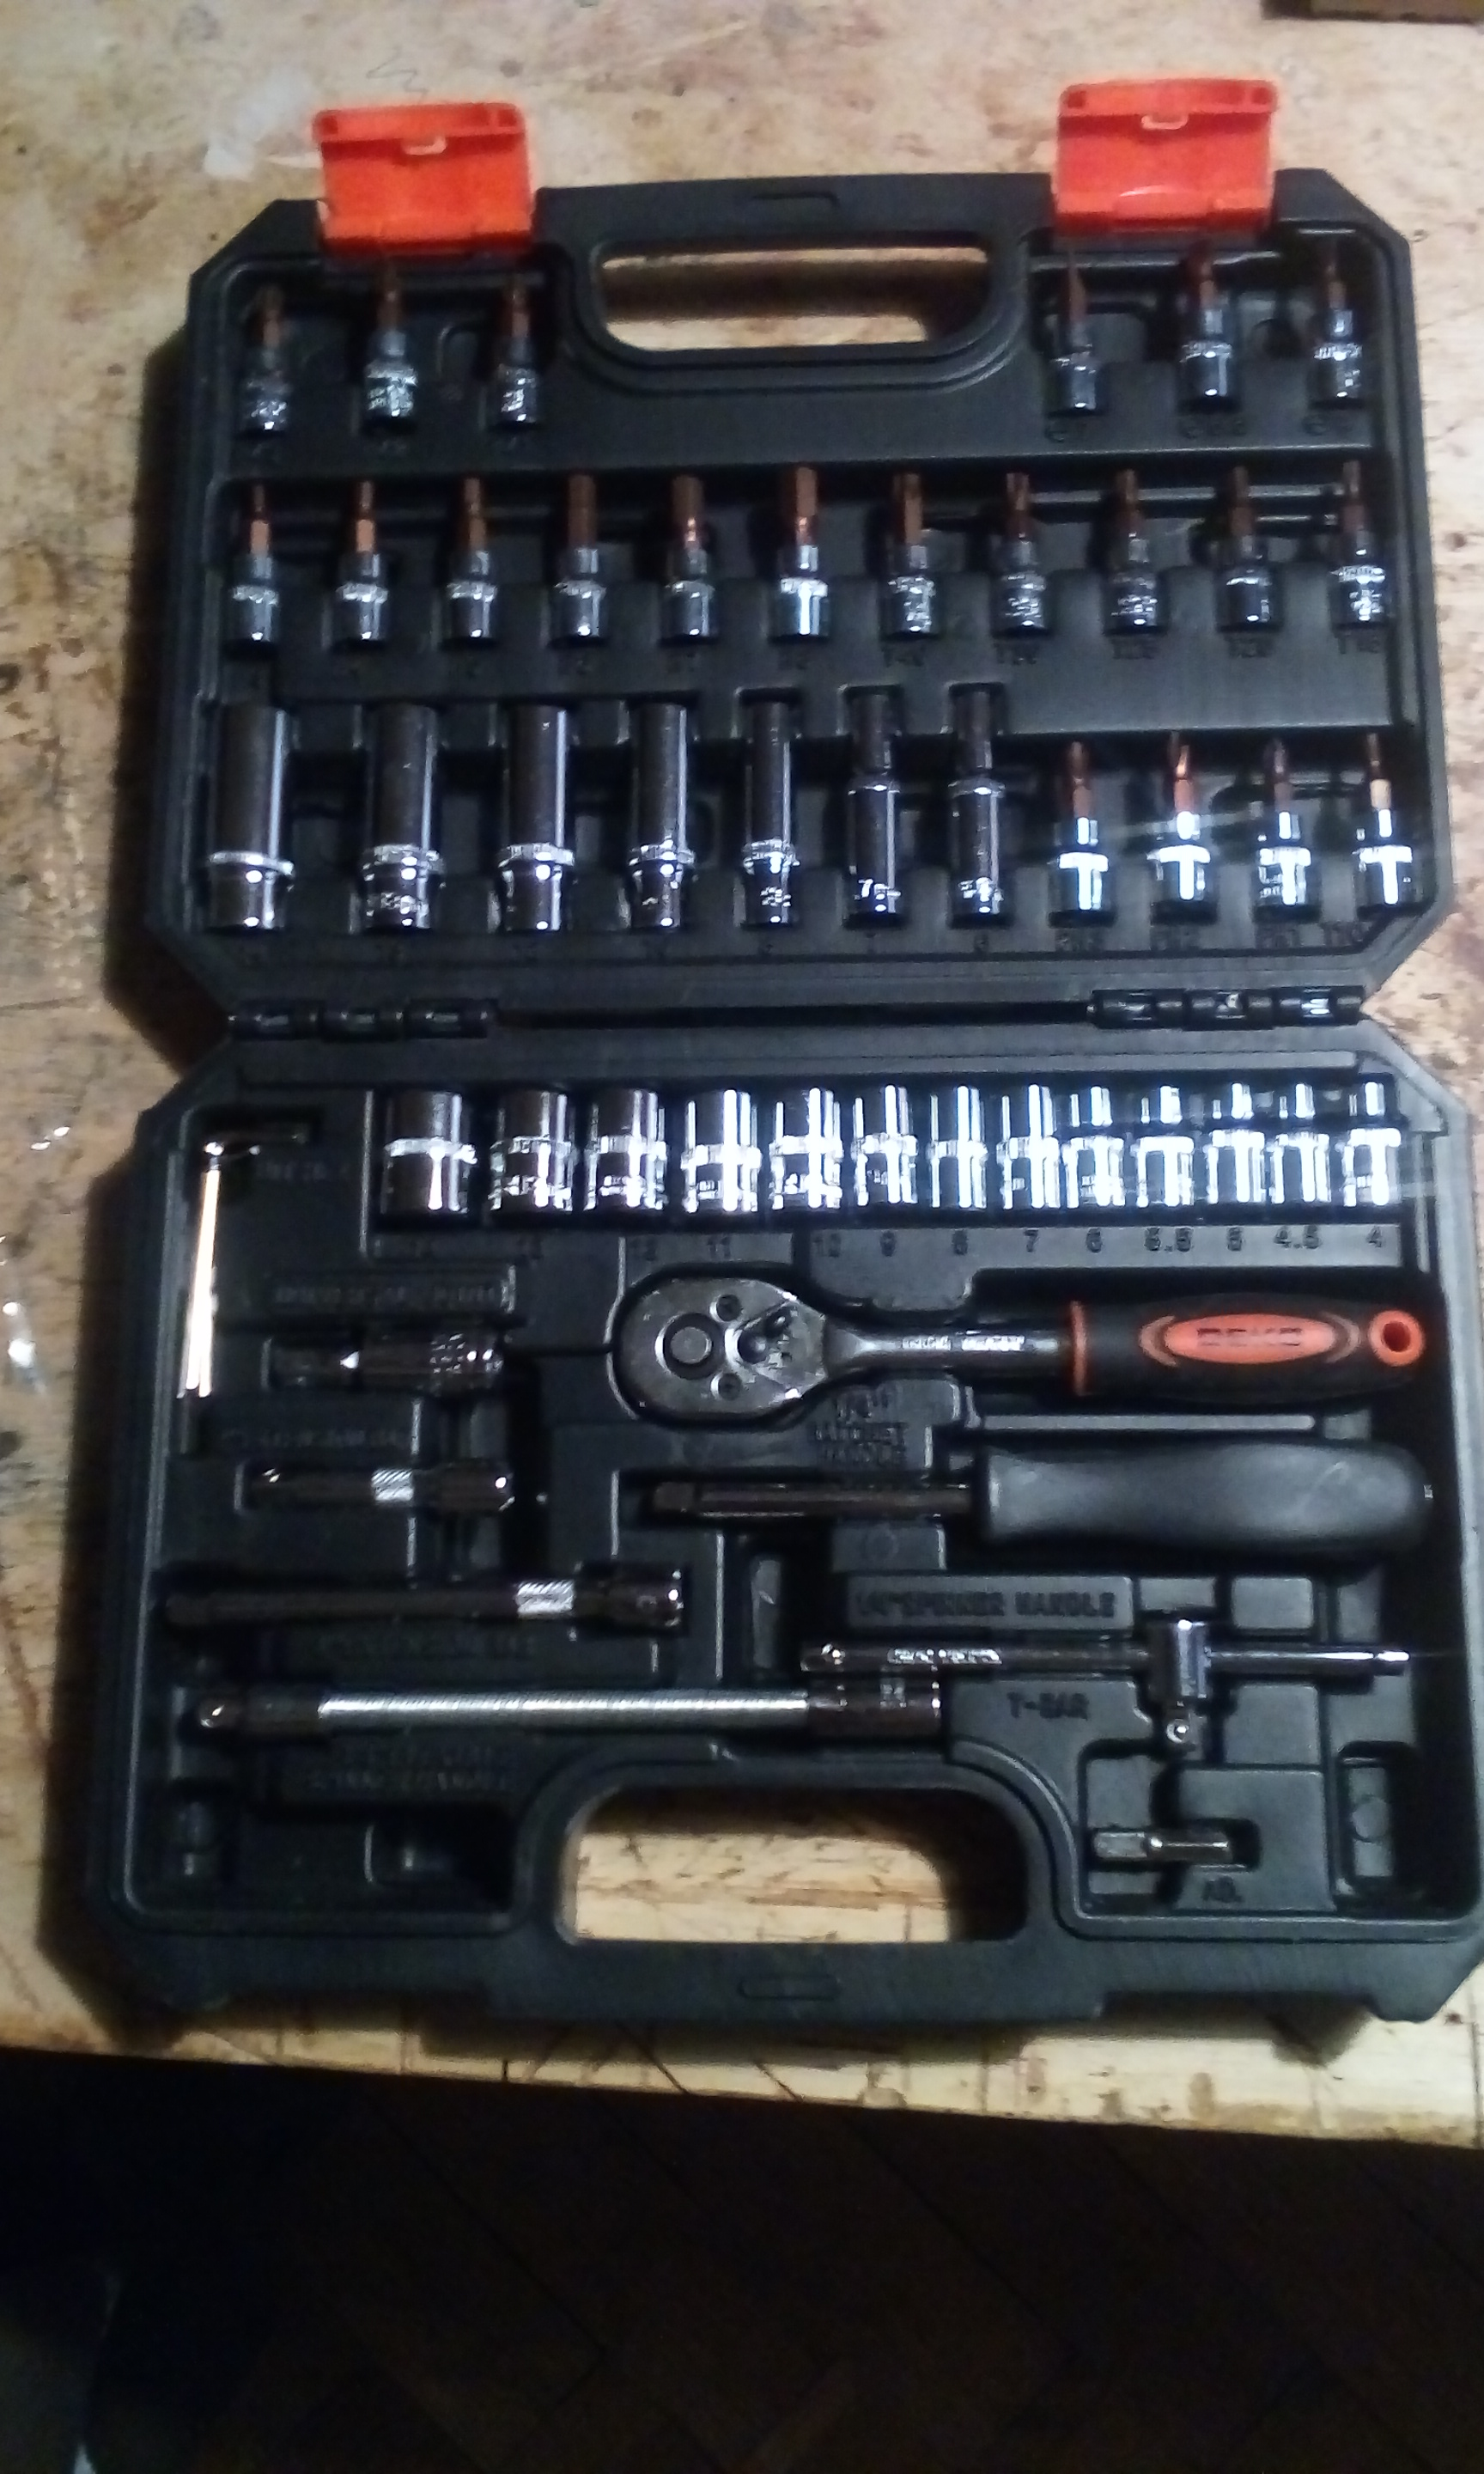 Tool set Deko tz53 (53 PCs) tool case 1/4 professional wrench with heads set free shipping|Hand Tool Sets| |  - AliExpress